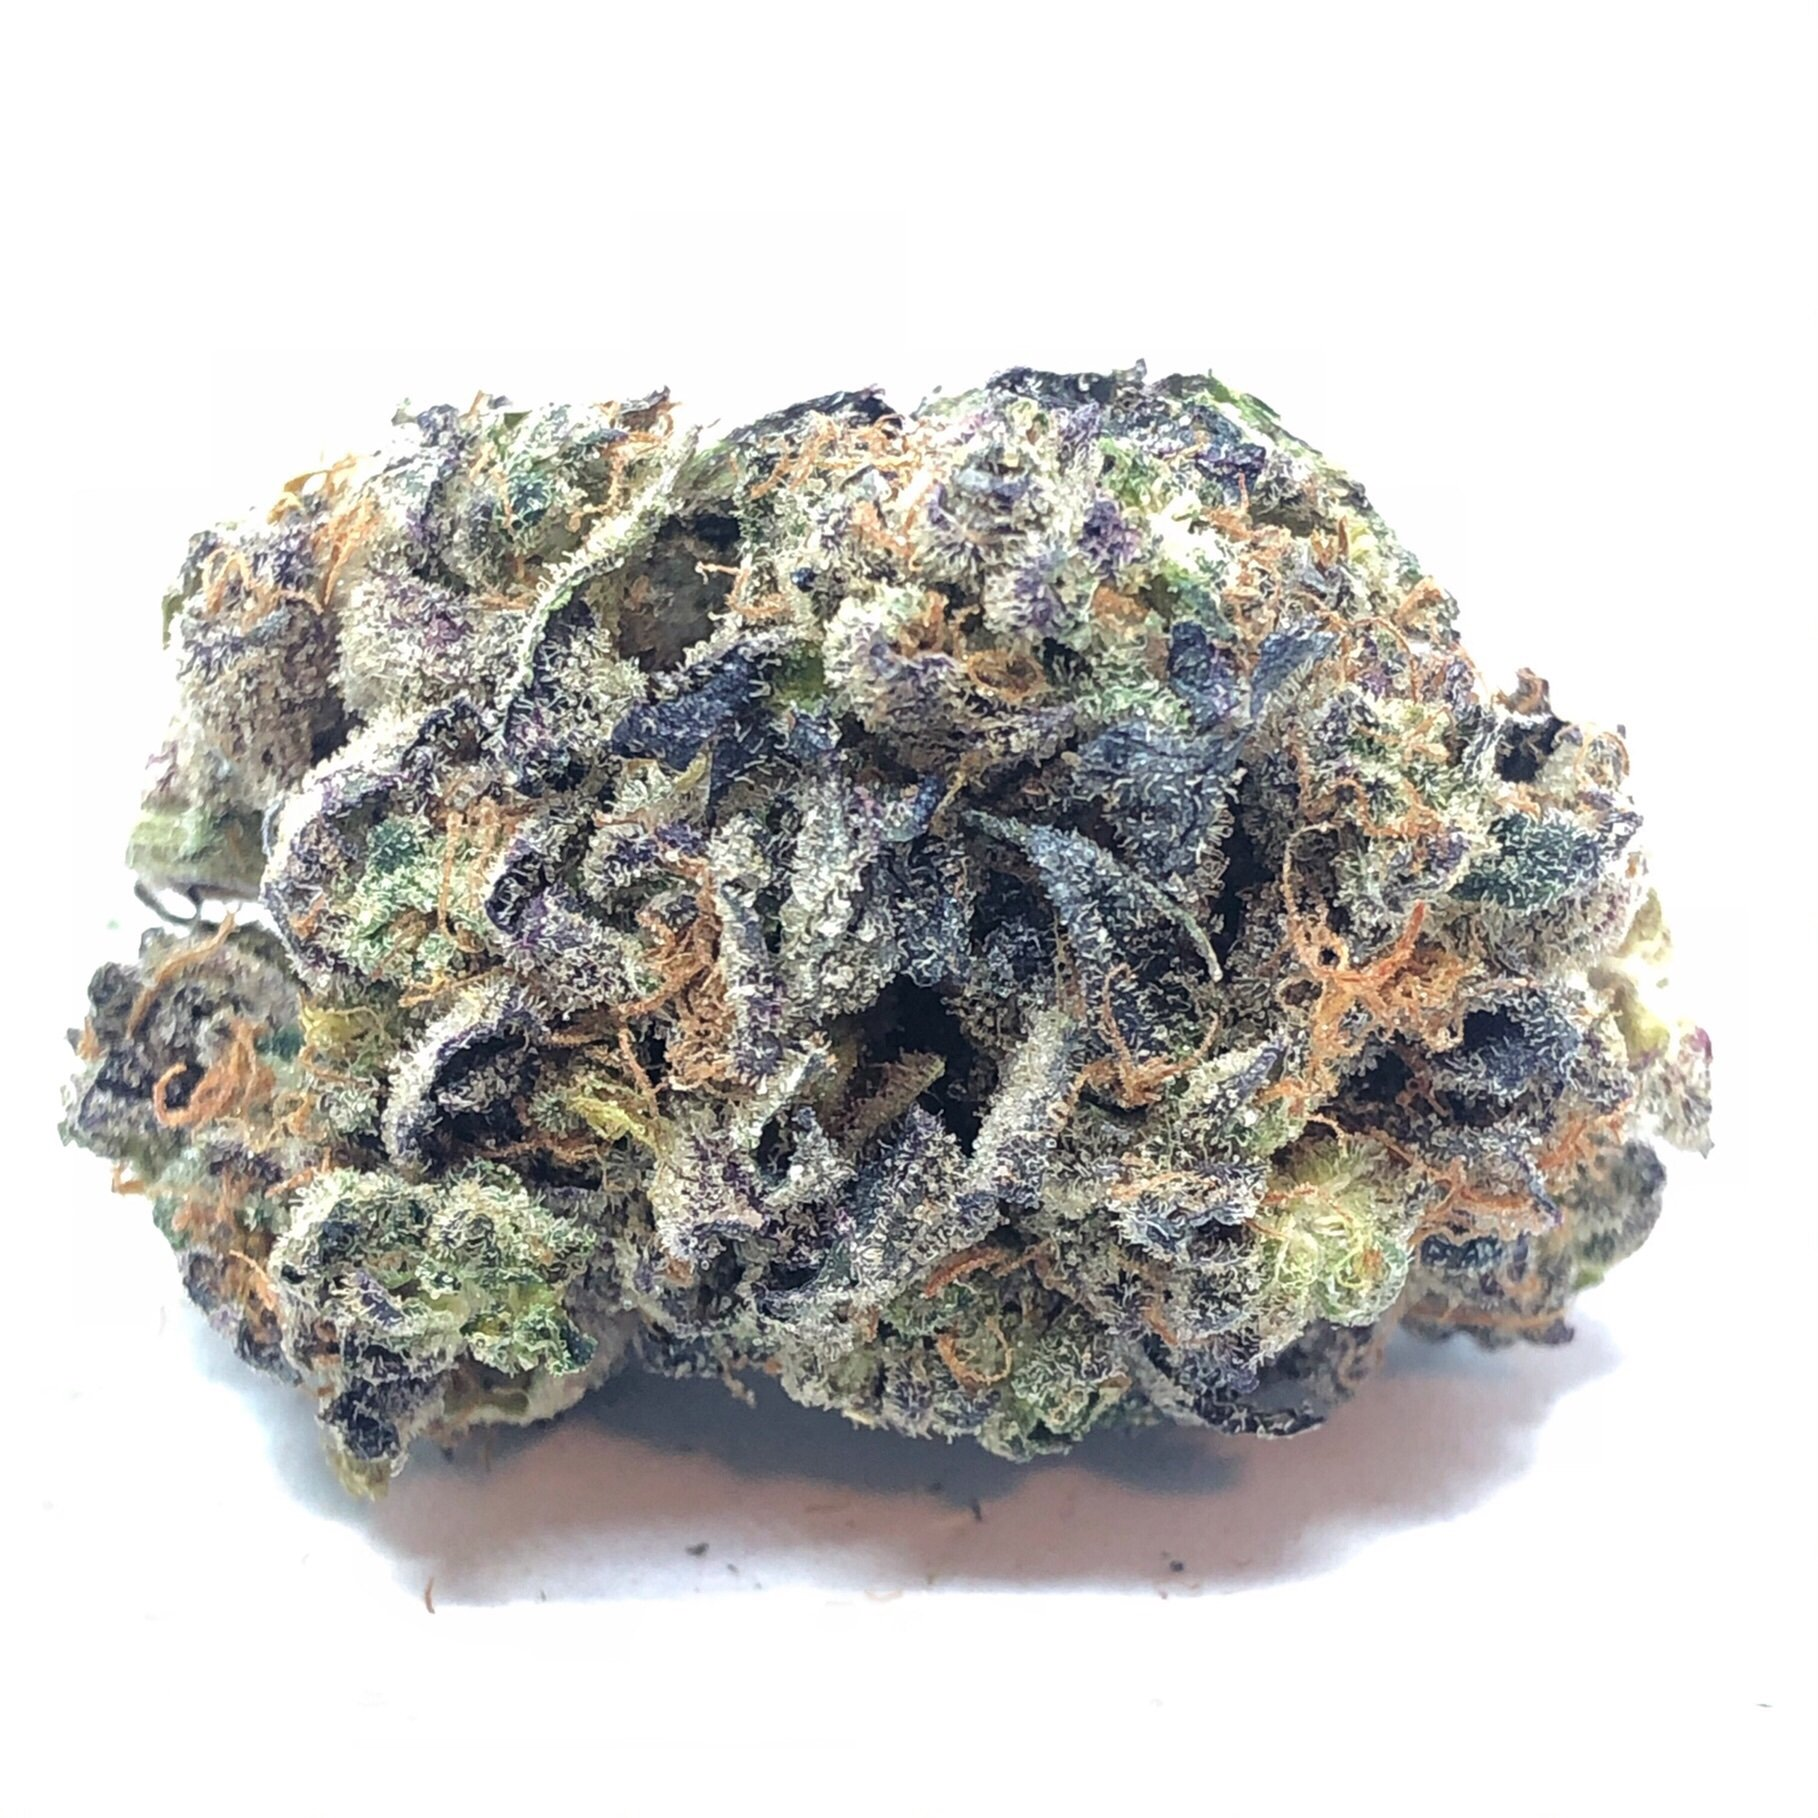 Grapefruit Durban by Ounce Buddy - Image © 2021 Ounce Buddy. All Rights Reserved.